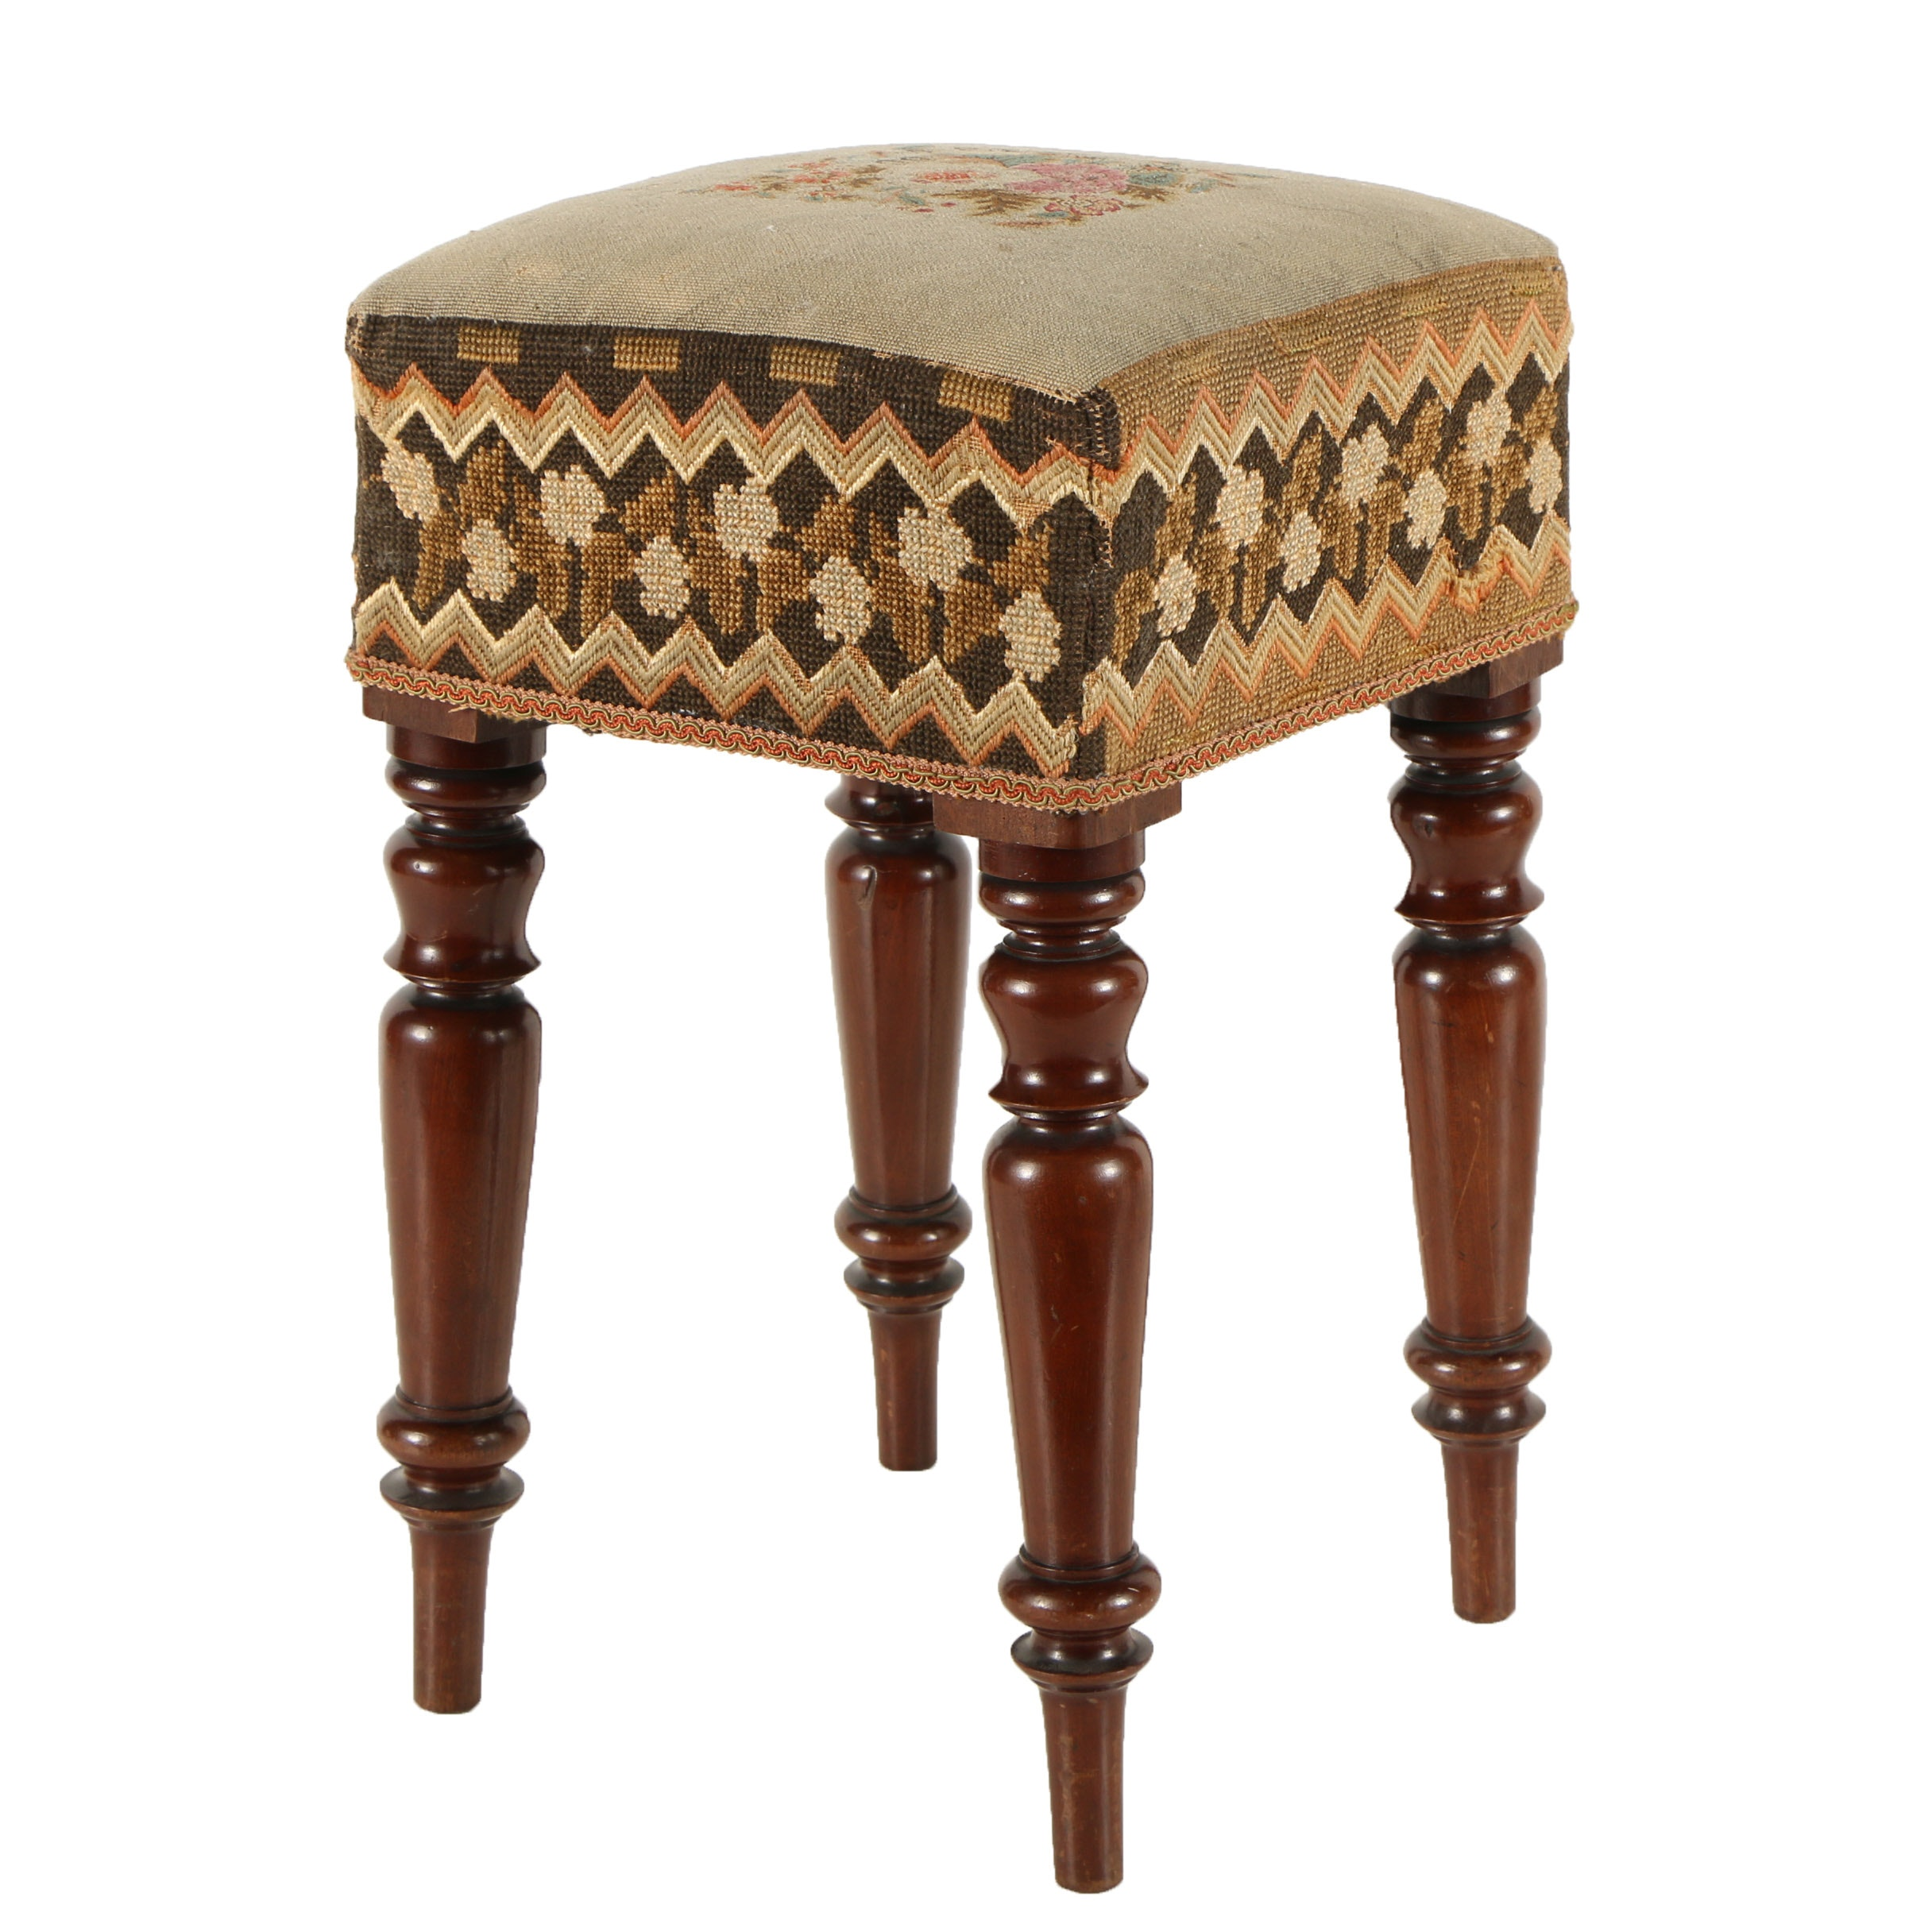 Vintage Wooden Footstool with Needle Point Designs